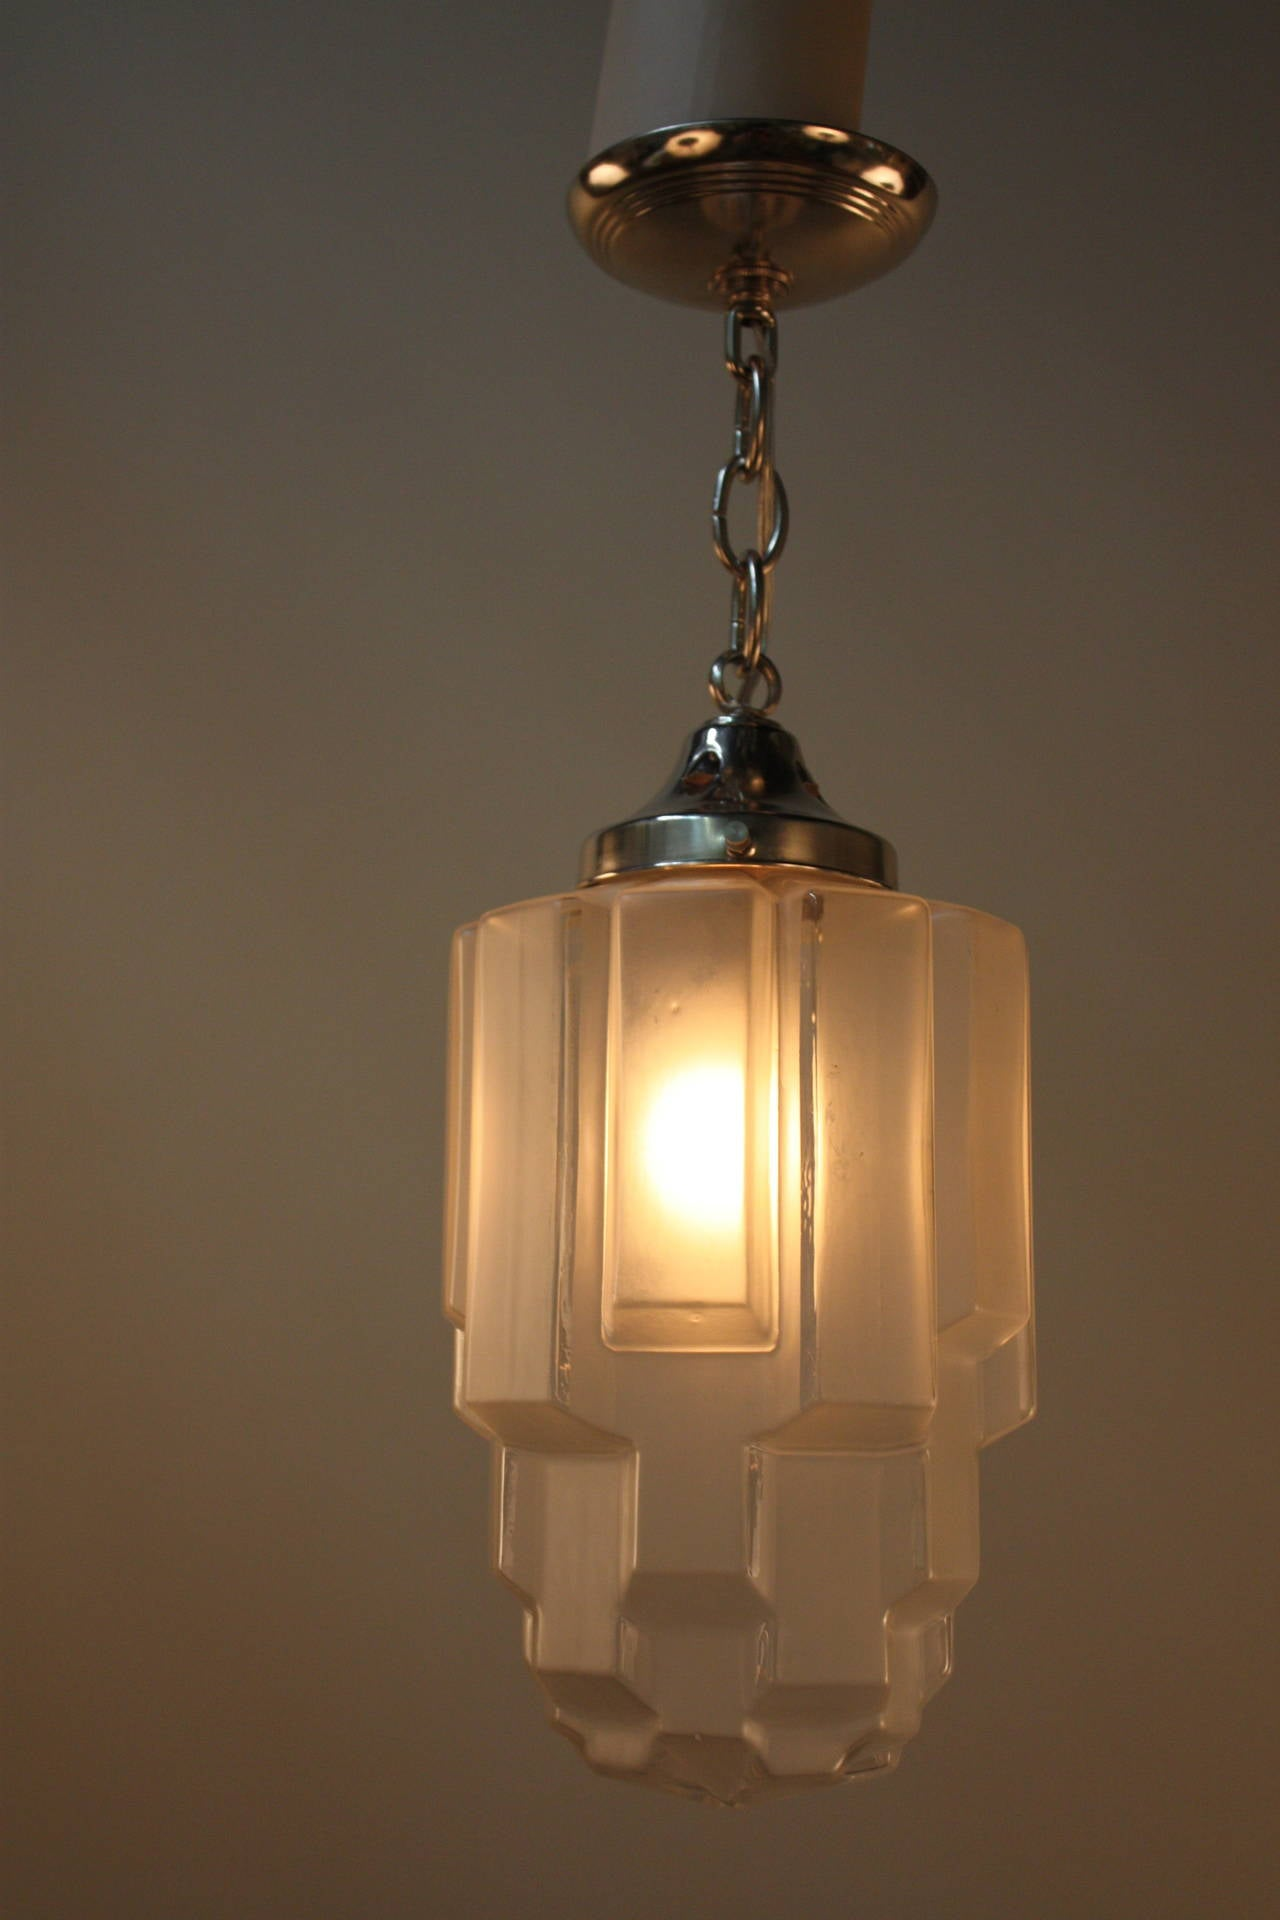 1930s art deco pendant light at 1stdibs. Black Bedroom Furniture Sets. Home Design Ideas